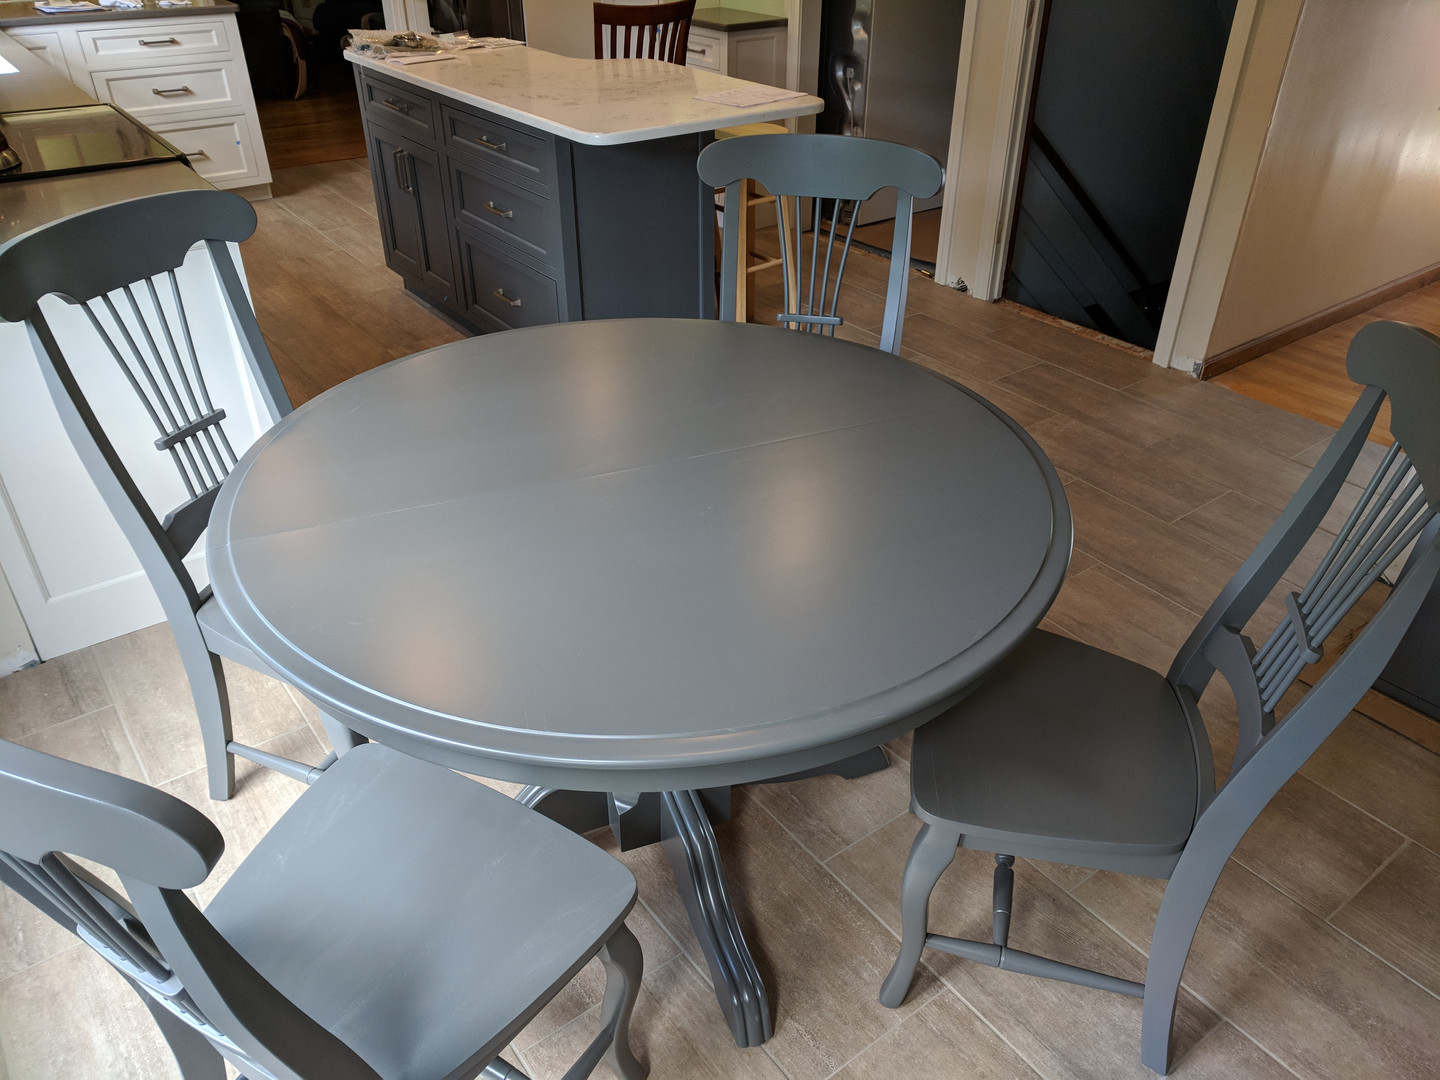 Table & Chairs finished to match island